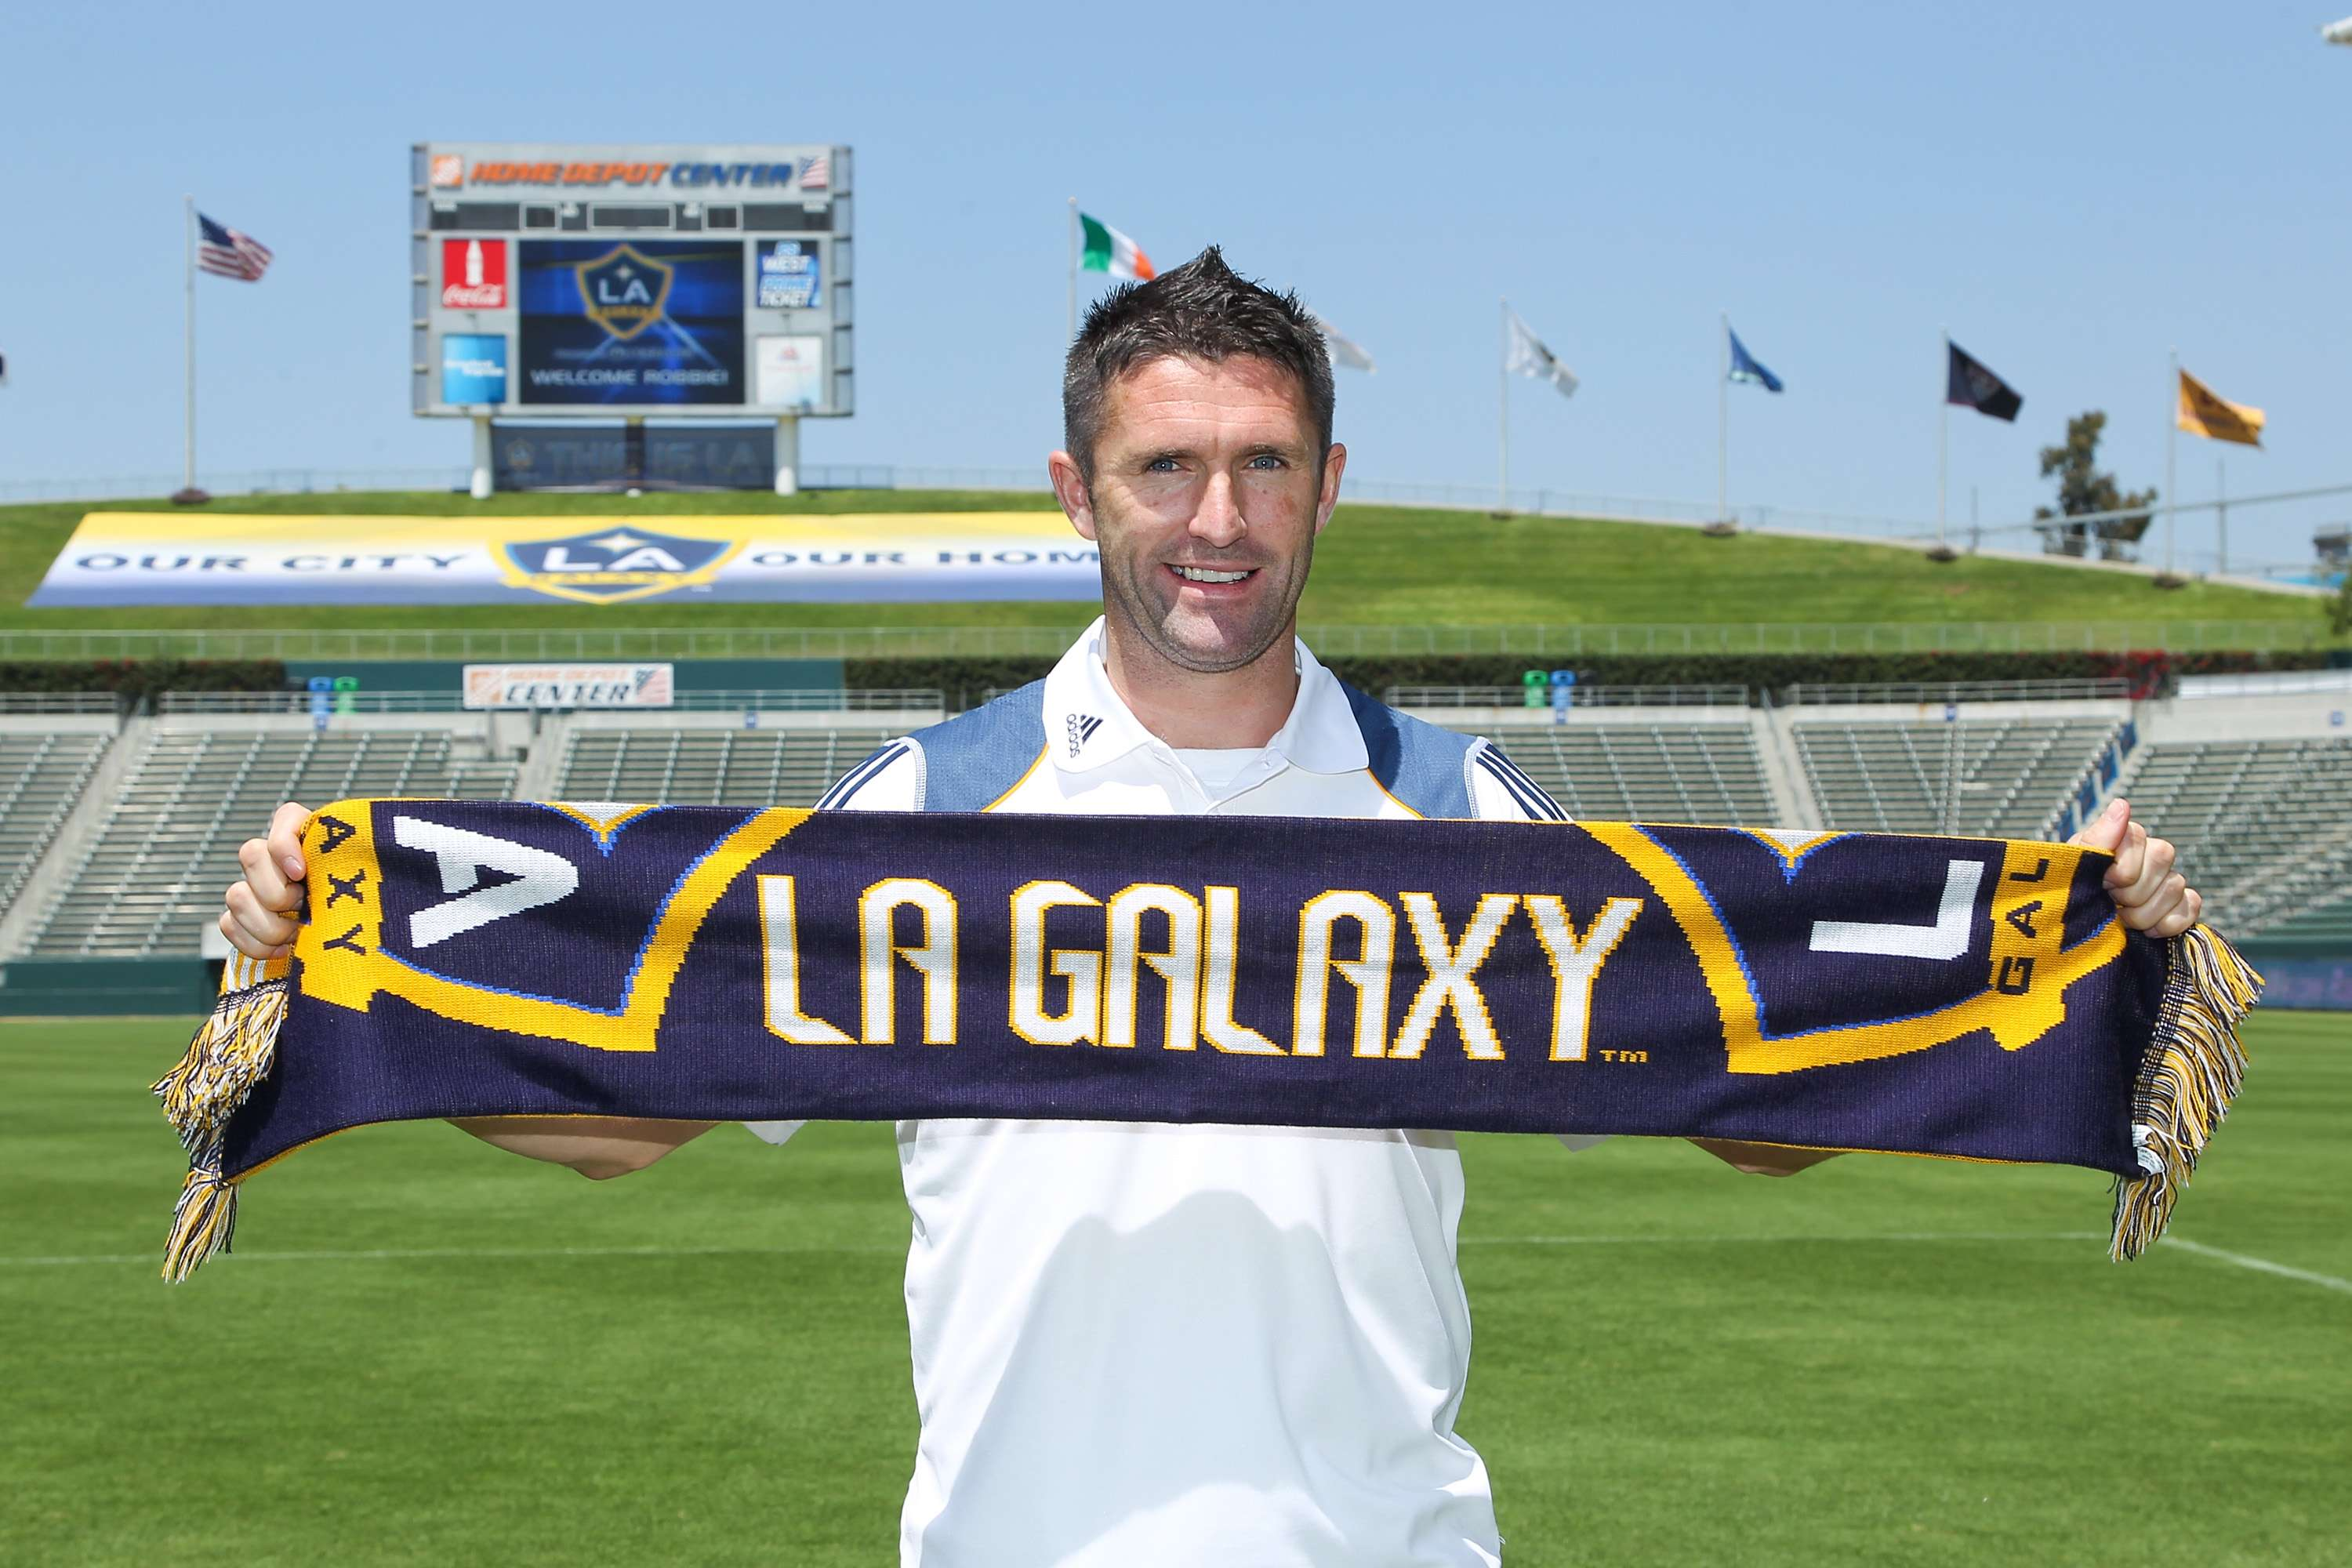 8. Robbie Keane: The Irish striker is the first big surprise on the list, managing to get large transfer fees for his transfers to Inter Milan, Liverpool and the LA Galaxy for a career total of $147 million. Foto: Getty Images